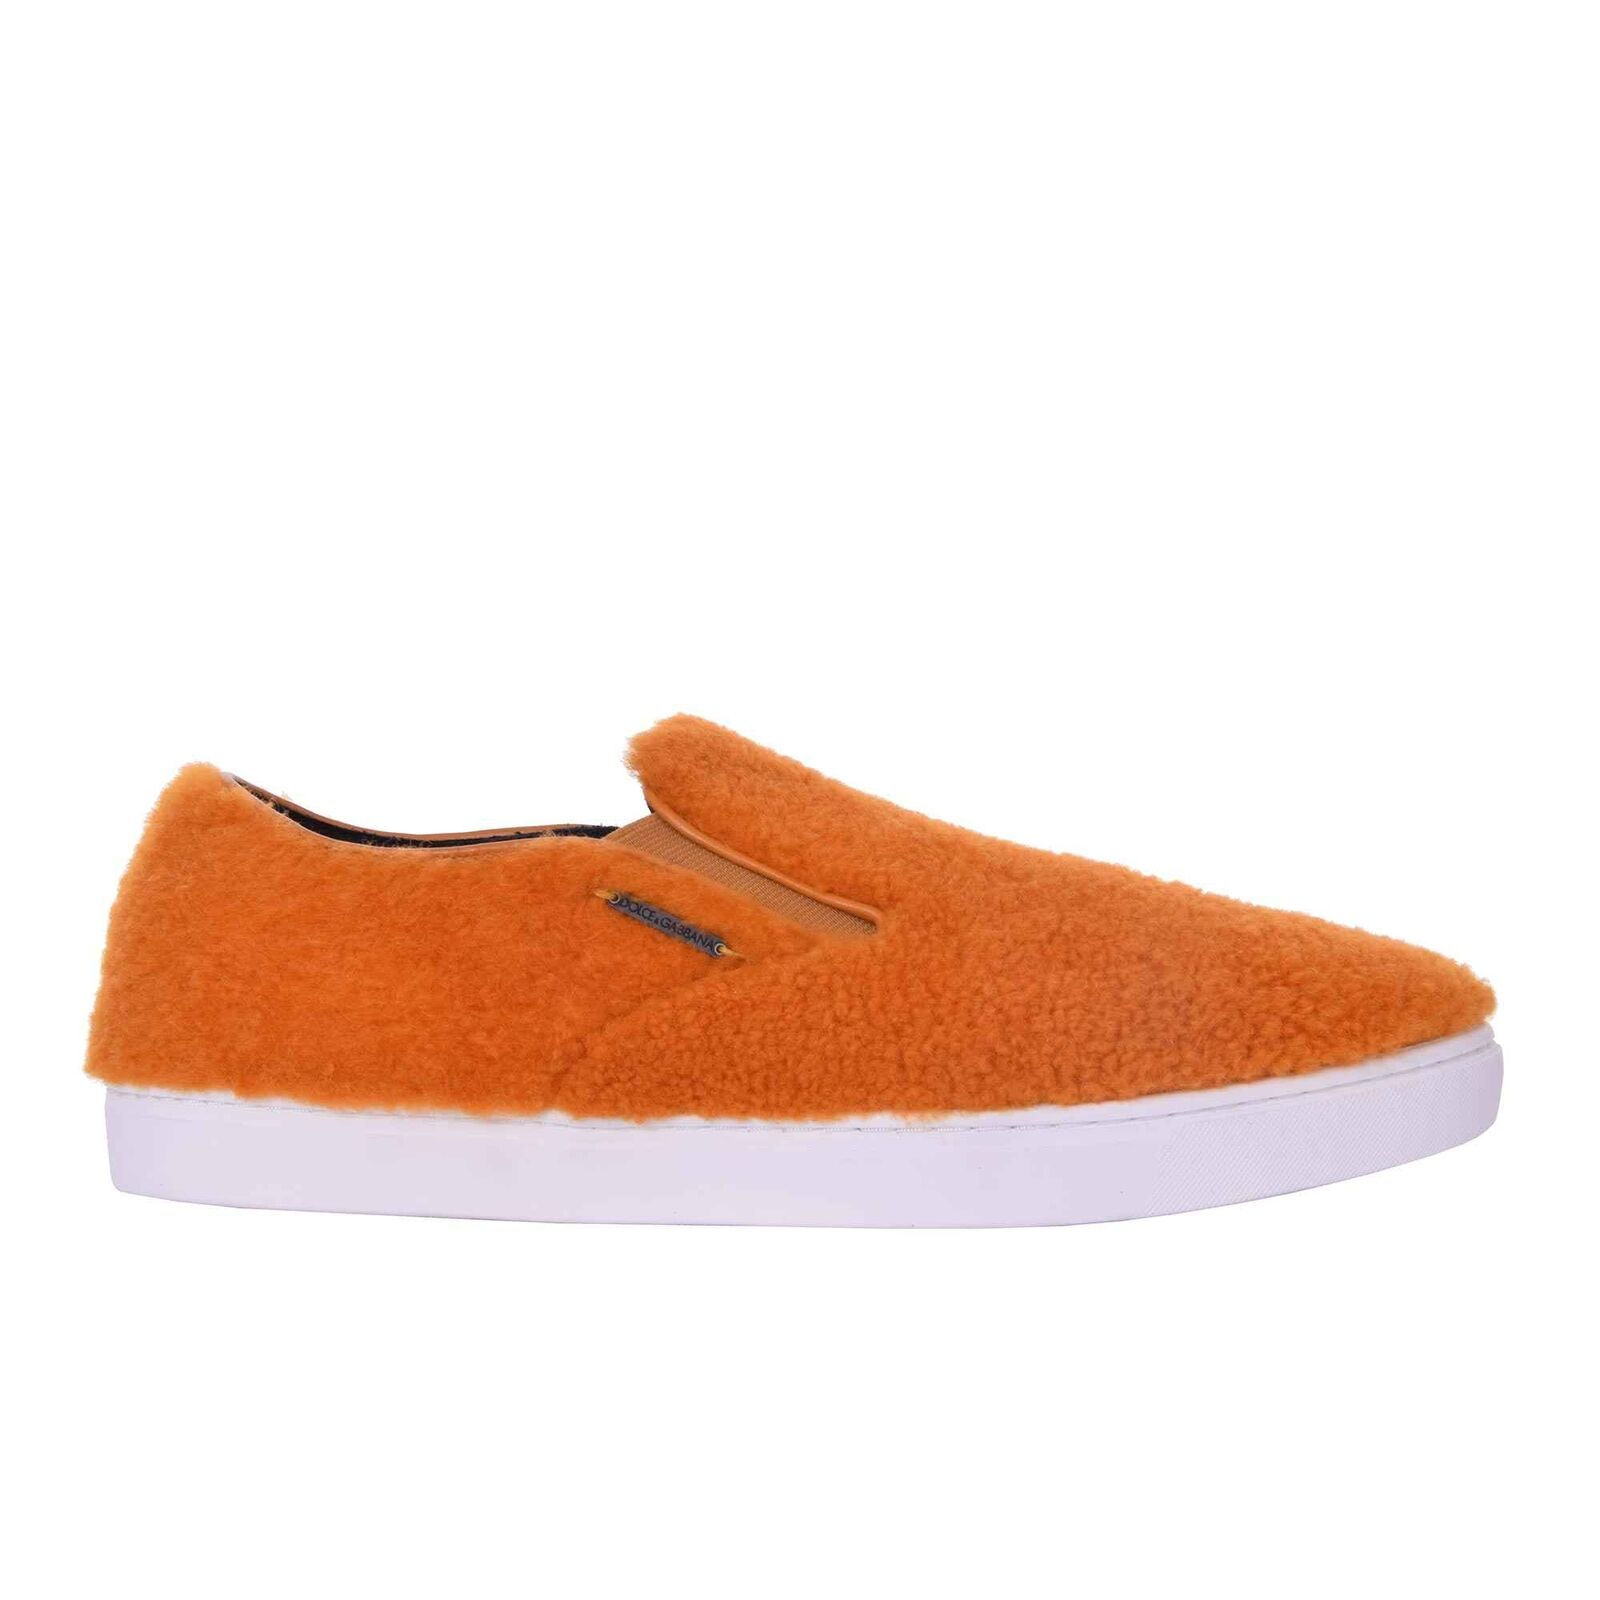 DOLCE & GABBANA Lamm Fell Slip-On Sneaker Sneakers LONDON Schuhe Orange 06248